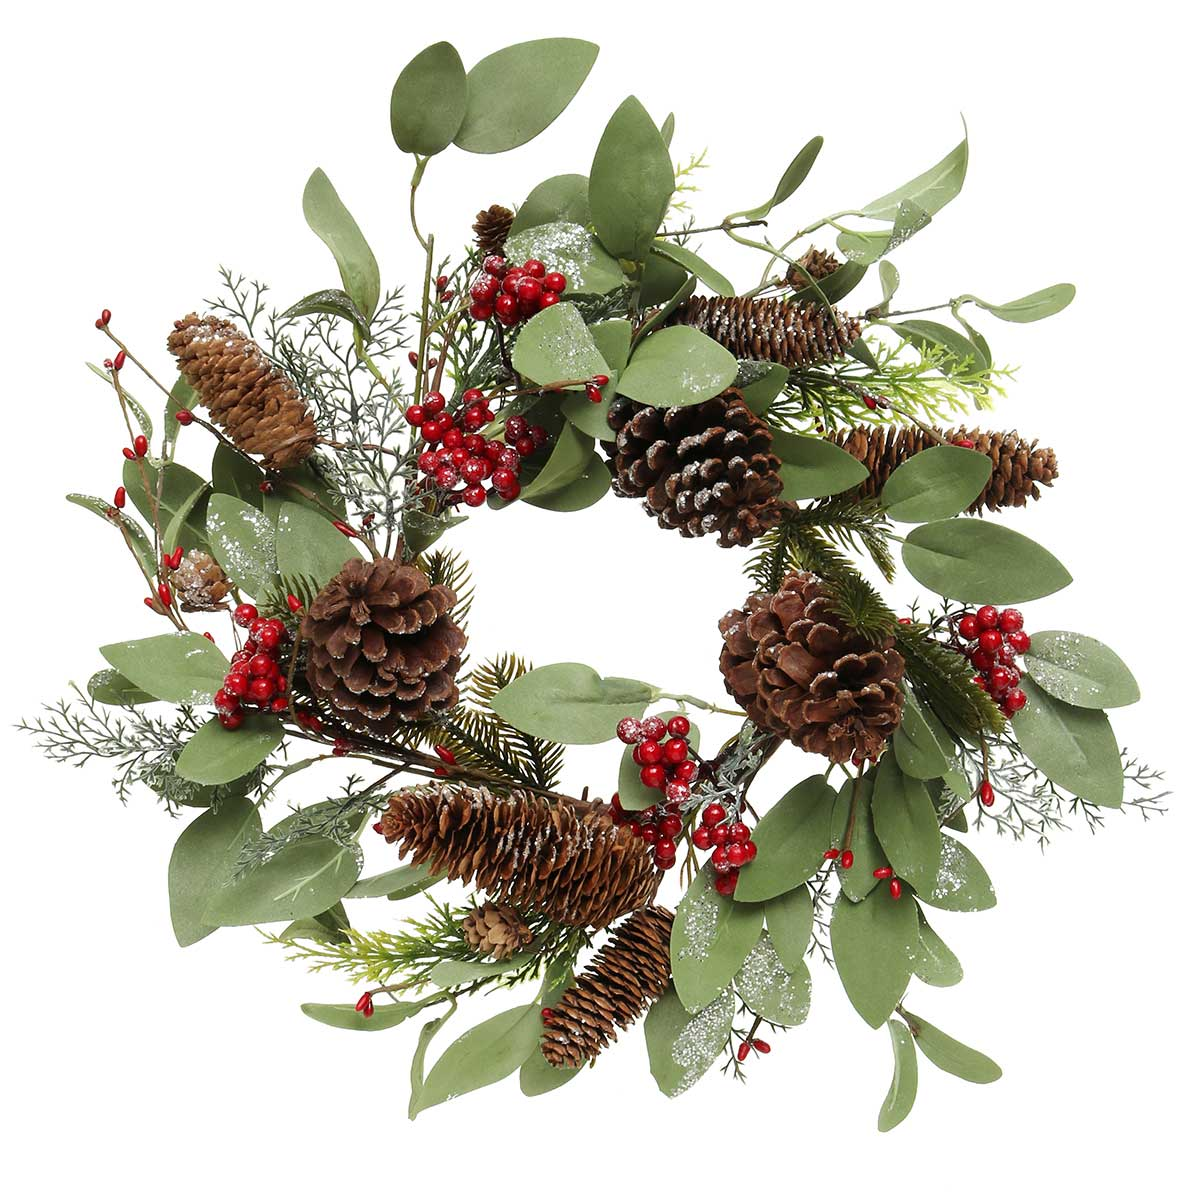 YULE LAUREL LEAF AND BERRY